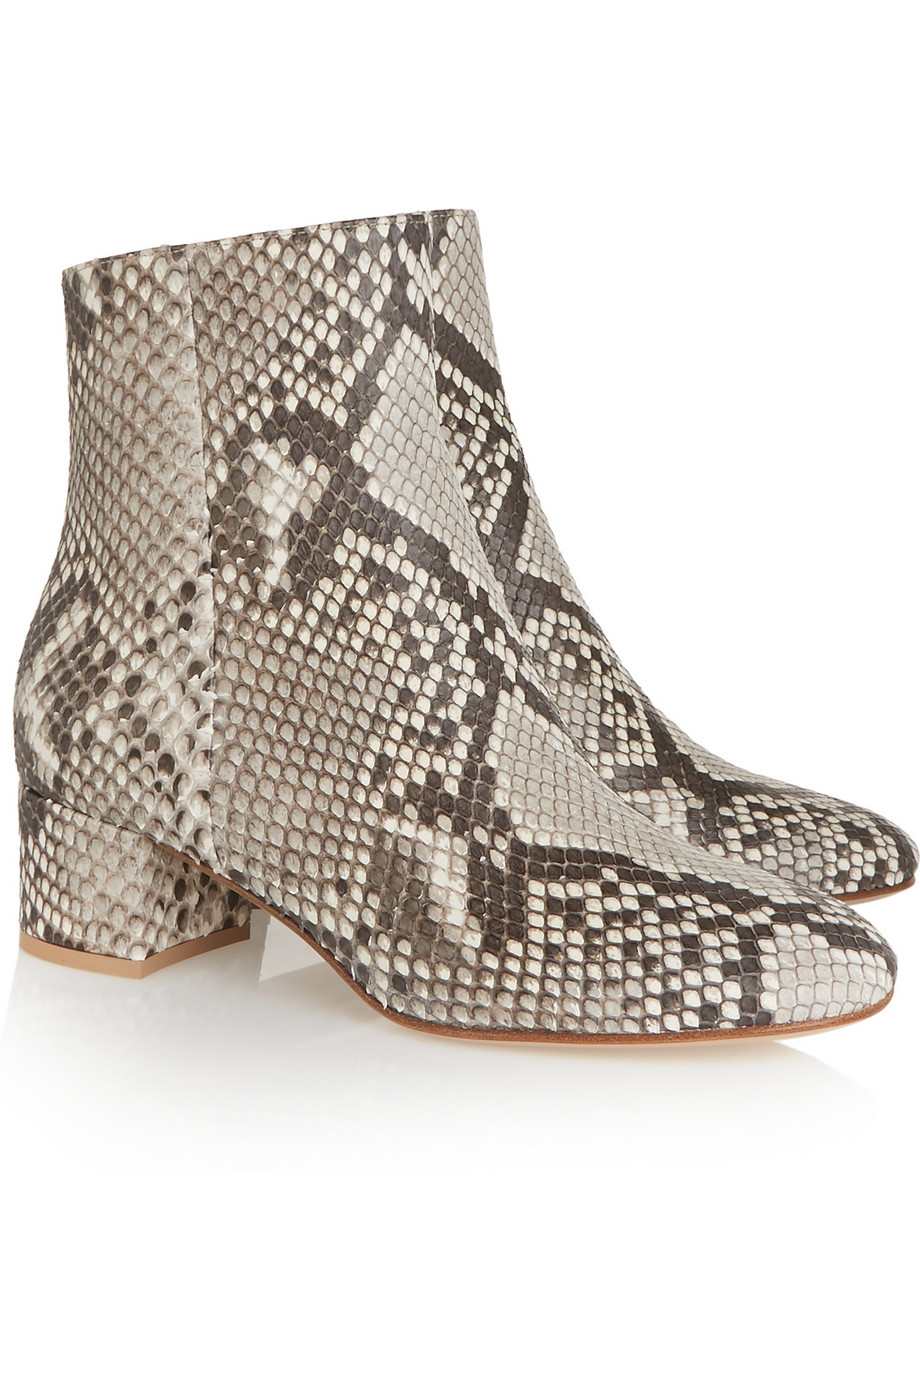 Gianvito Rossi Python Ankle Boots Lyst